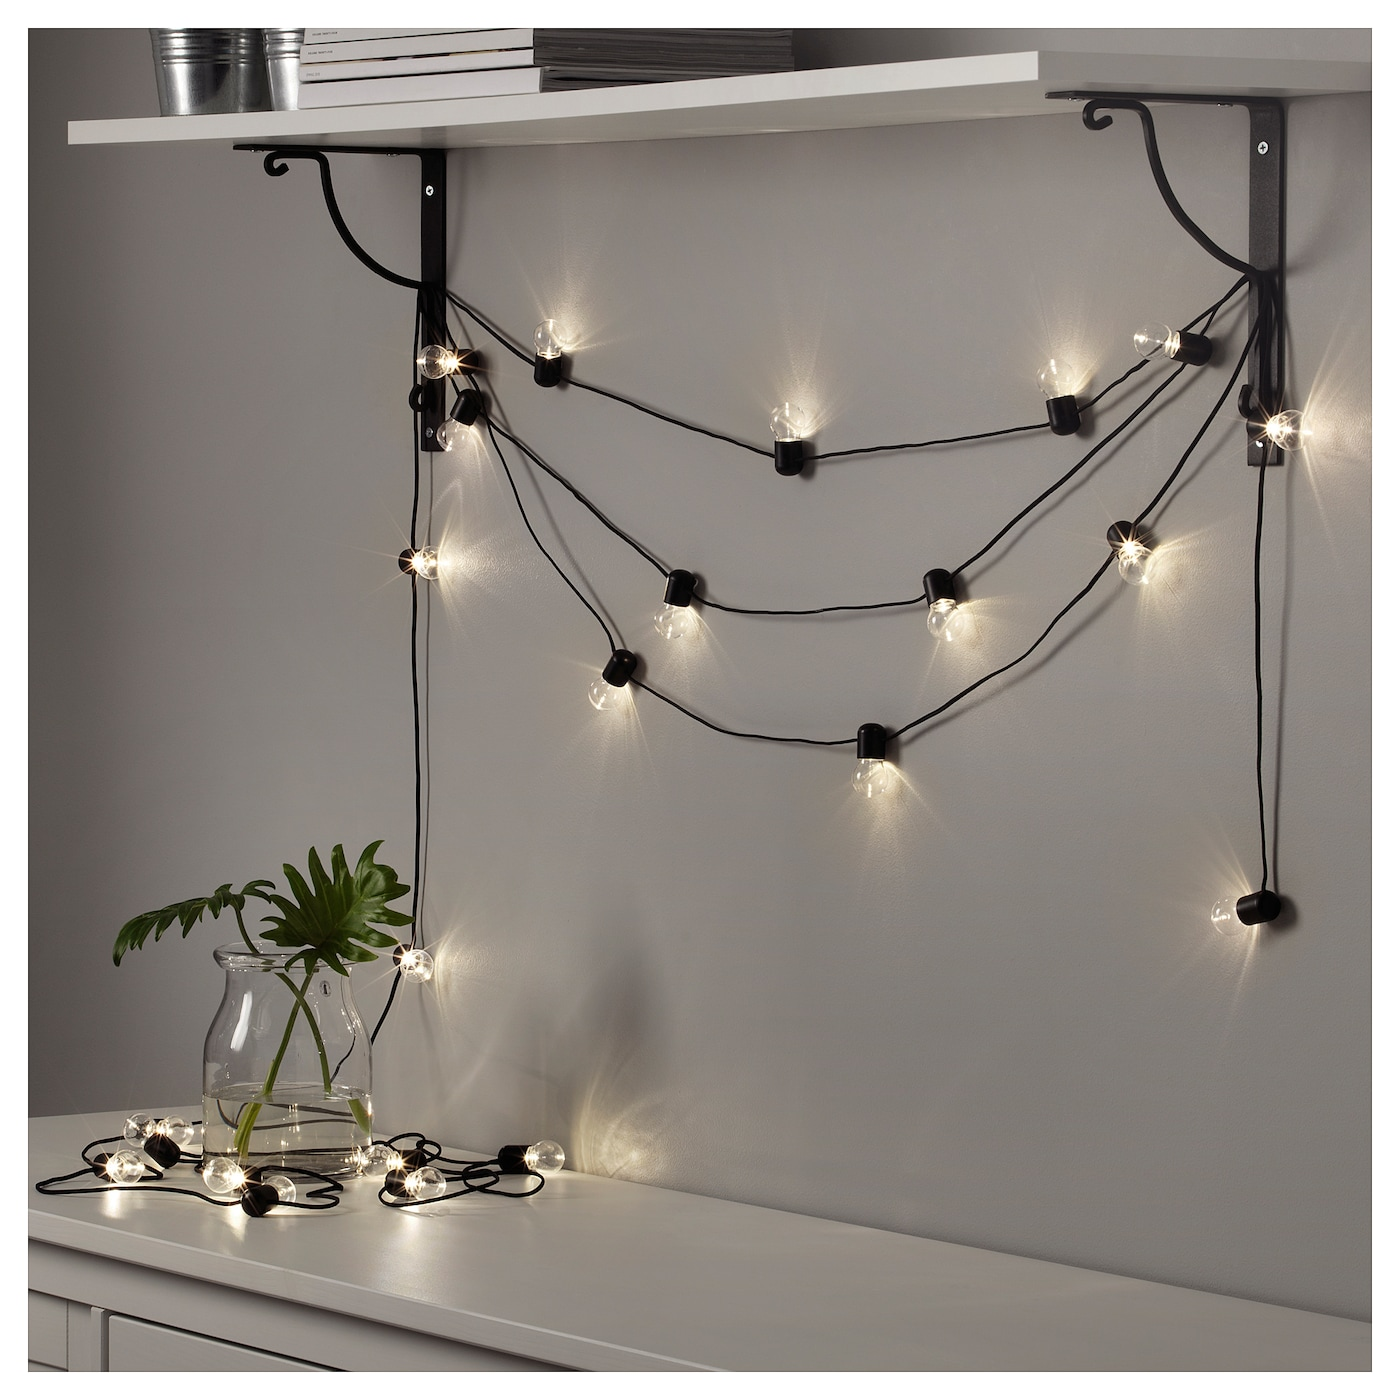 Bltsn Led Lighting Chain With 24 Lights Indoor Black Ikea High Power Mood Lamp Creates A Soft Cosy Light In